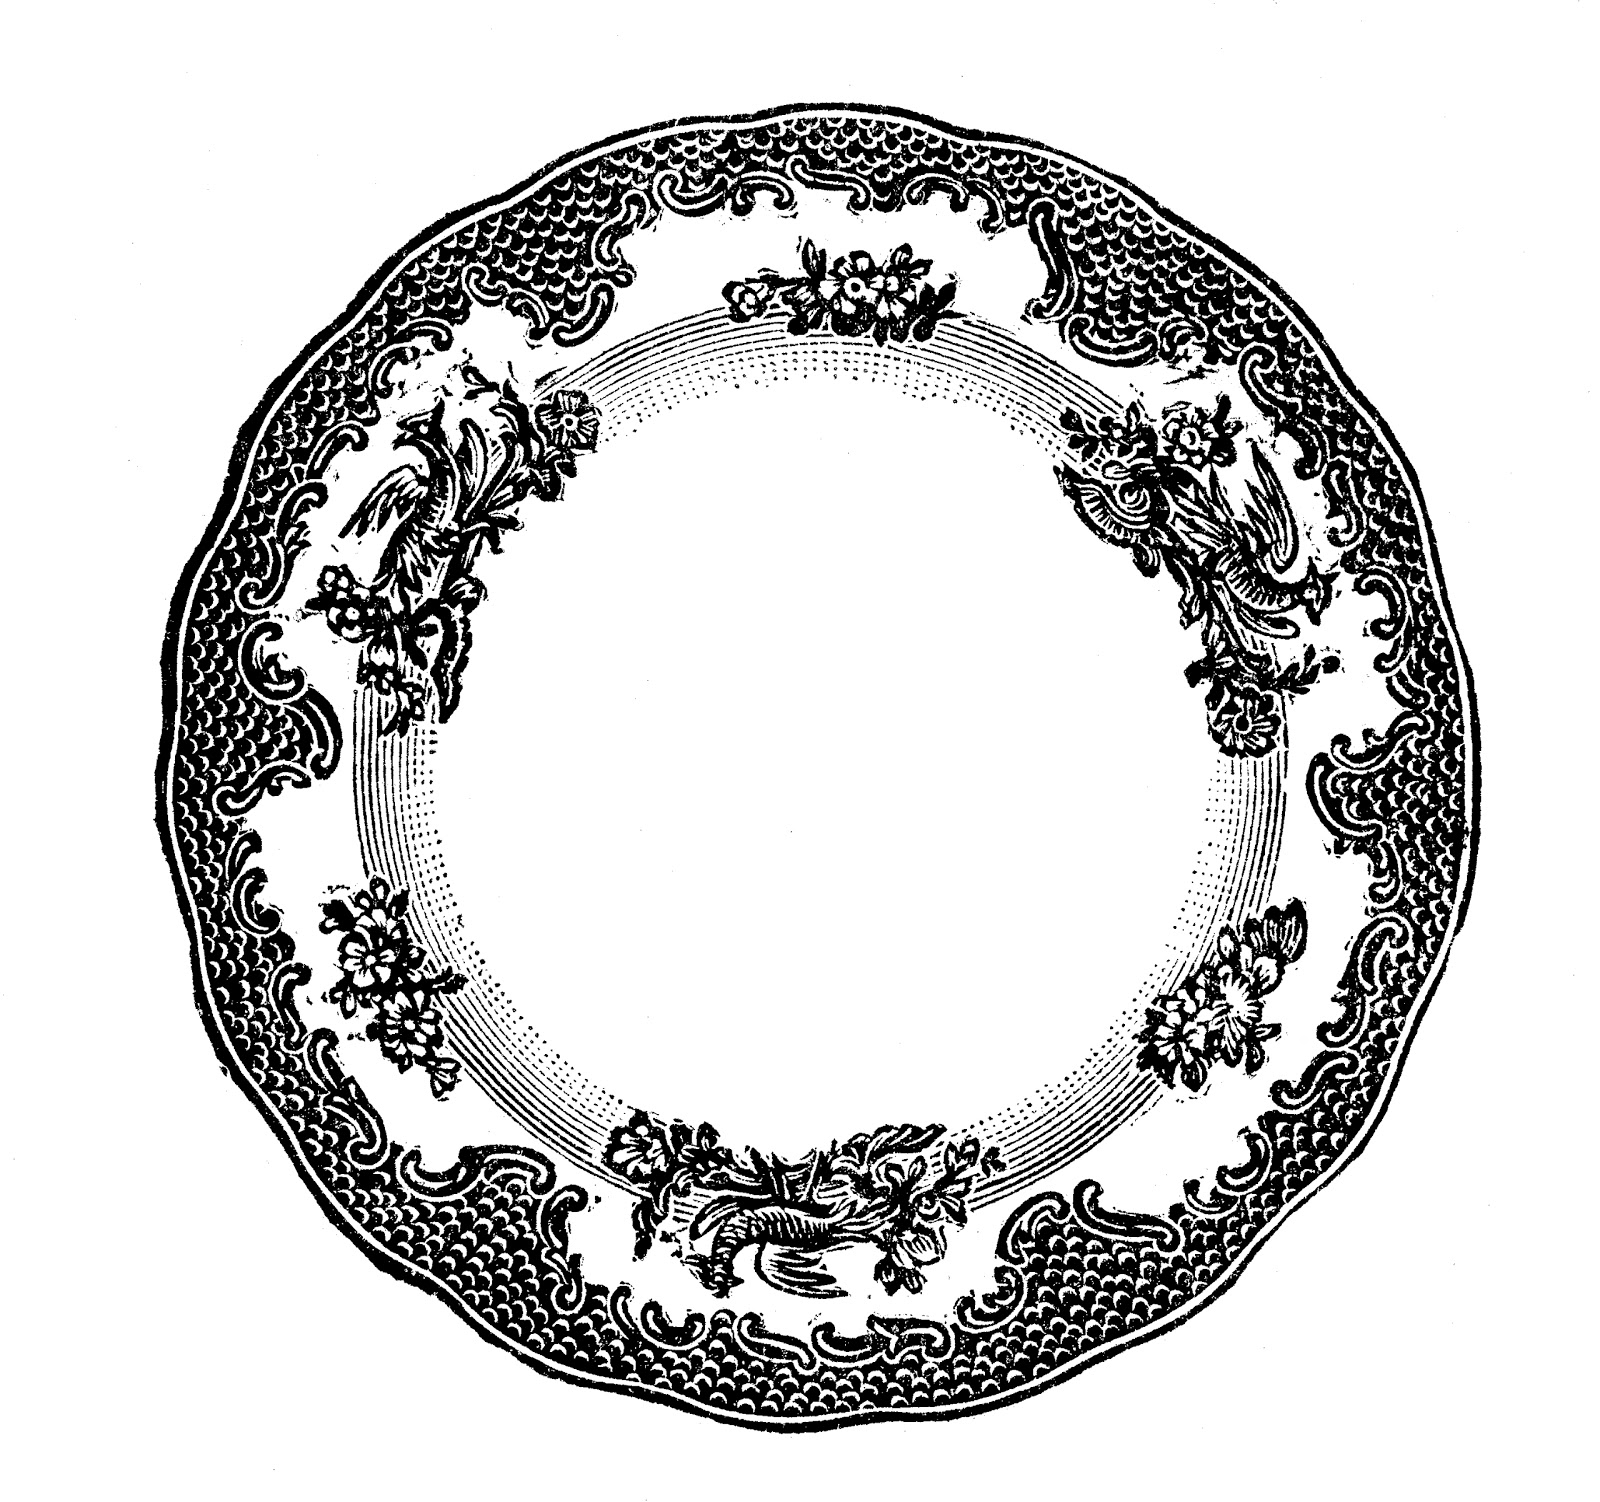 Free vintage clip art images: Vintage plates and dishes ...